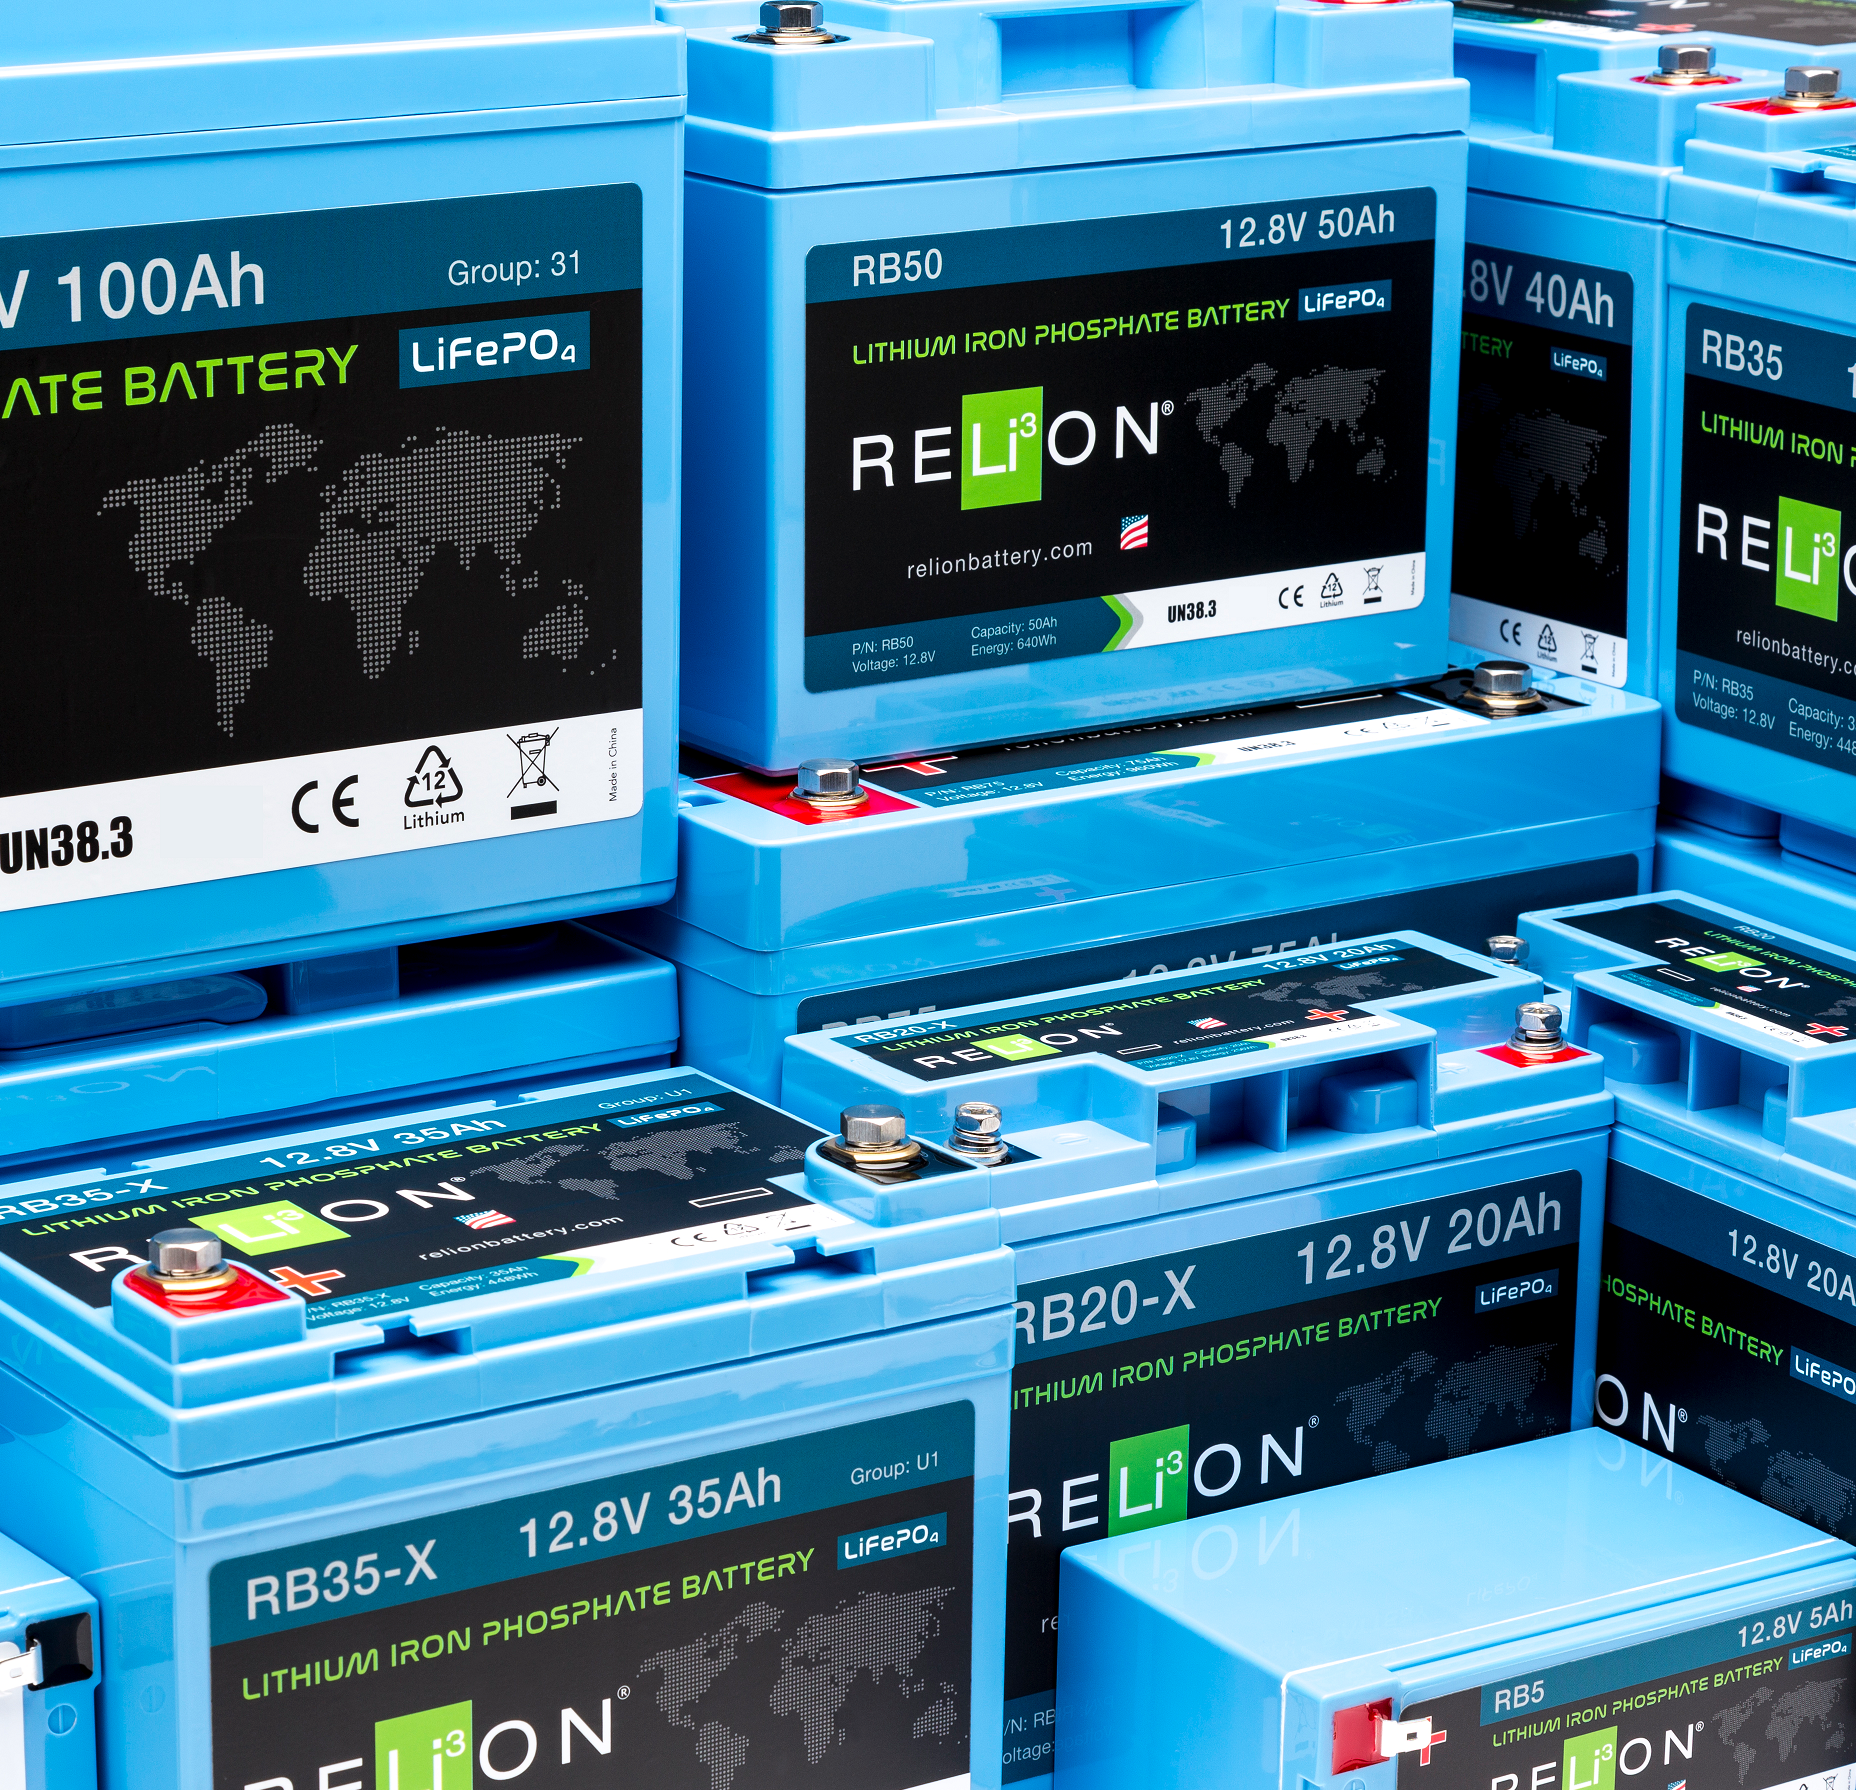 RELiON-Lithium-Iron-Phosphate-Battery.jpg#asset:416